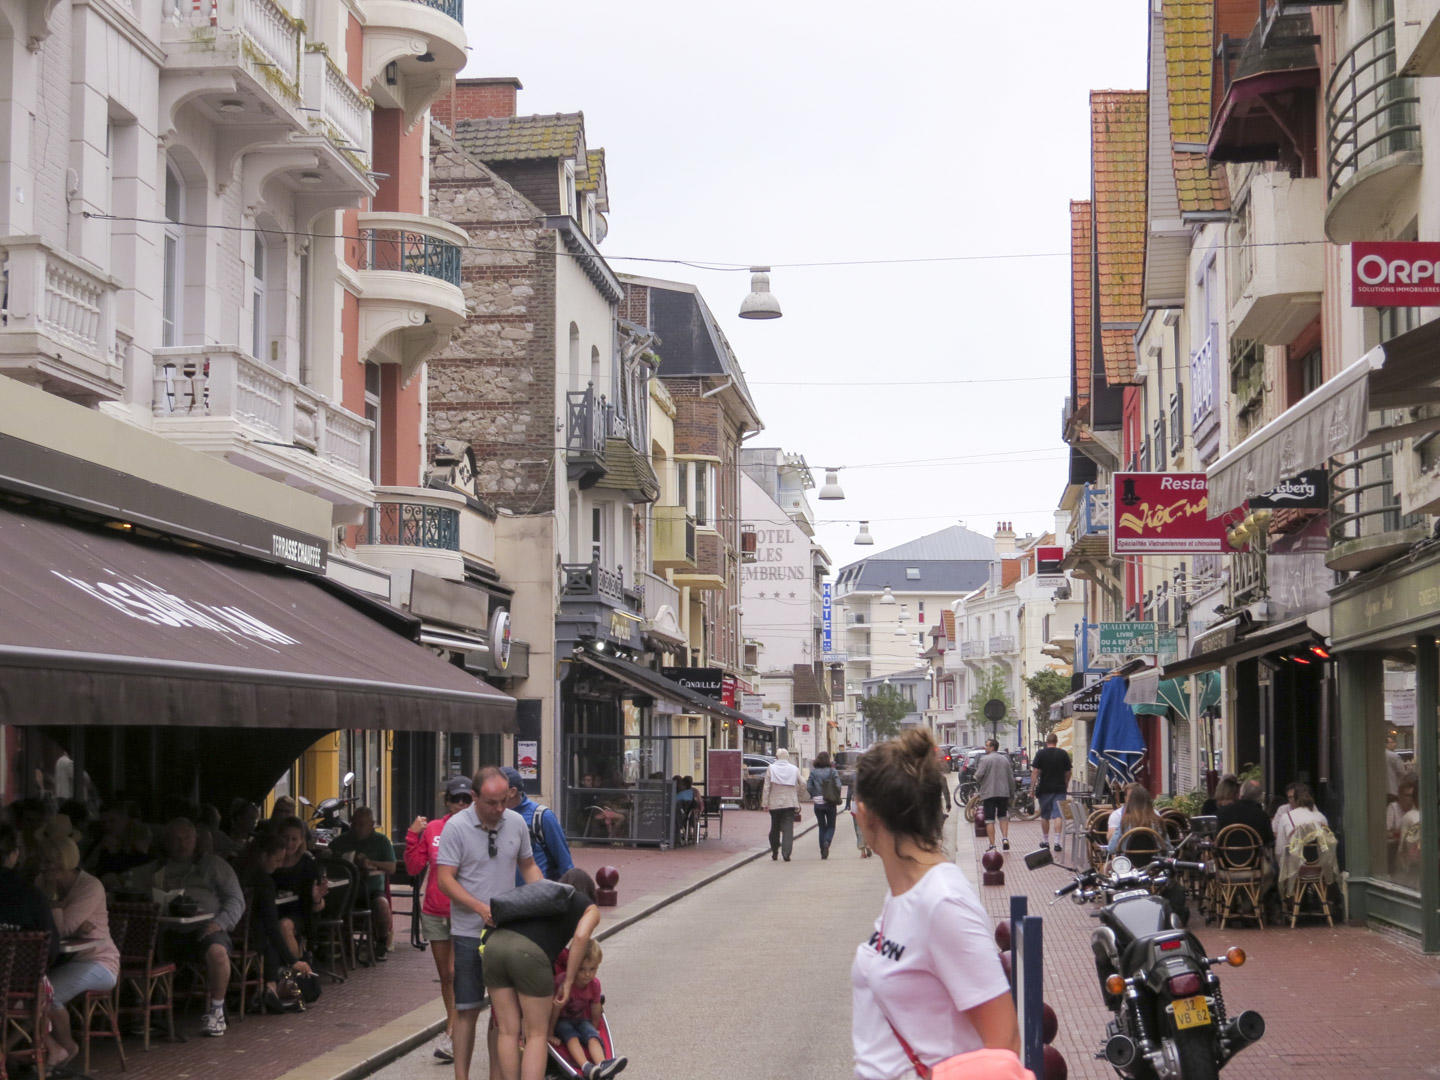 Looking down a street in Le Touquet, France